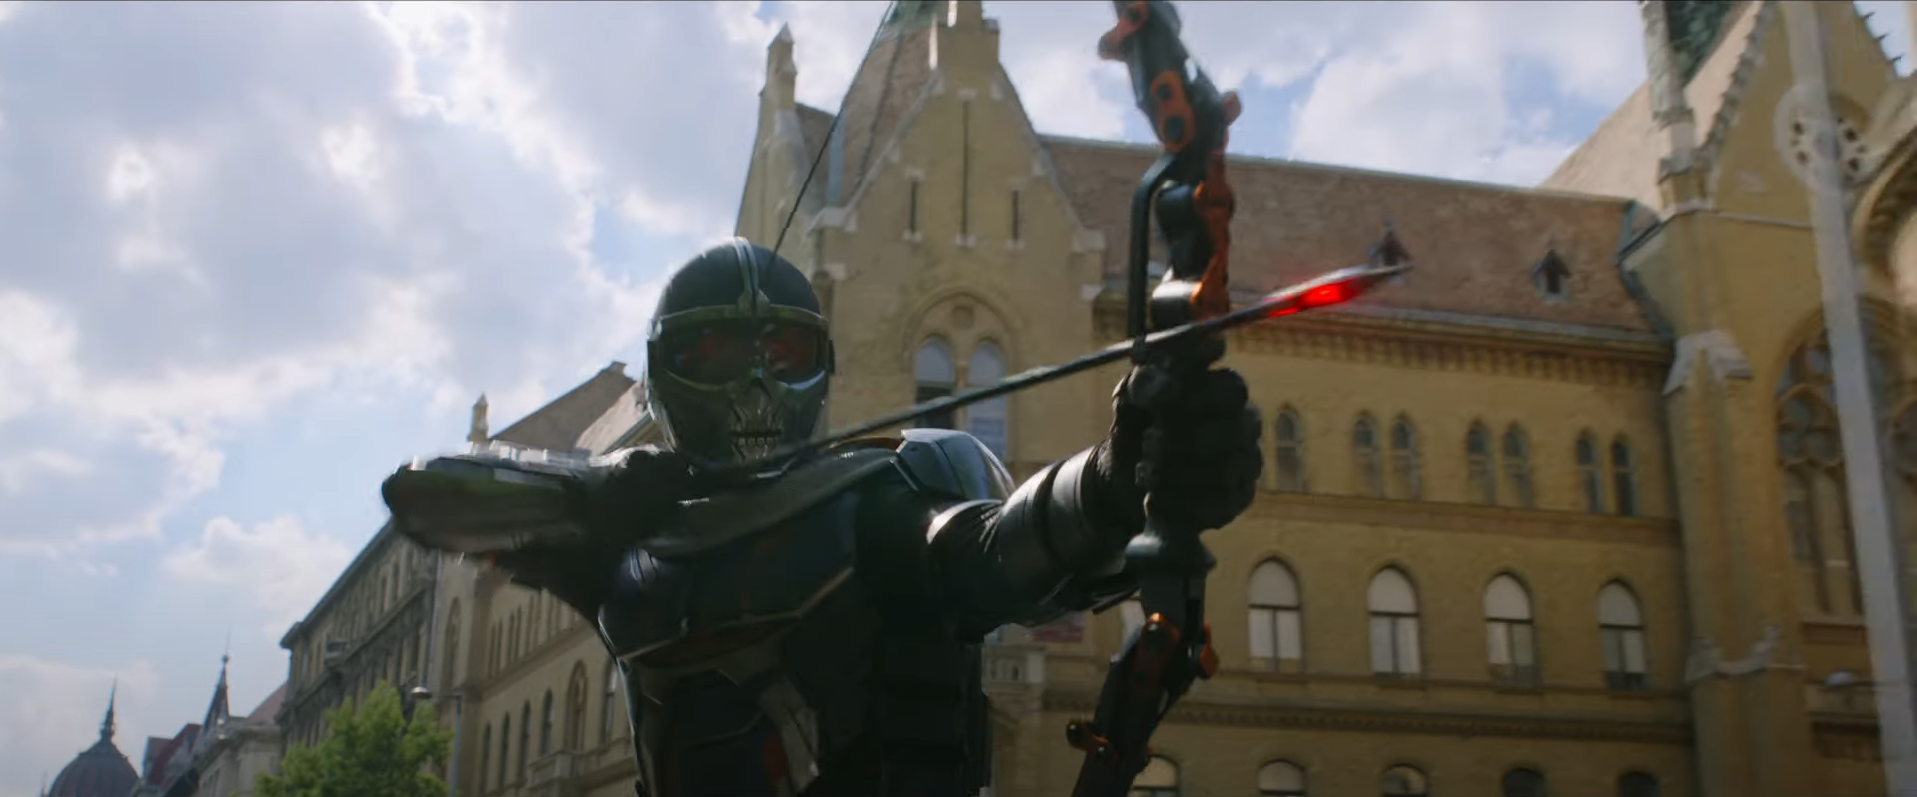 Taskmaster from the Black Widow movie shooting an explosive arrow out of a vehicle